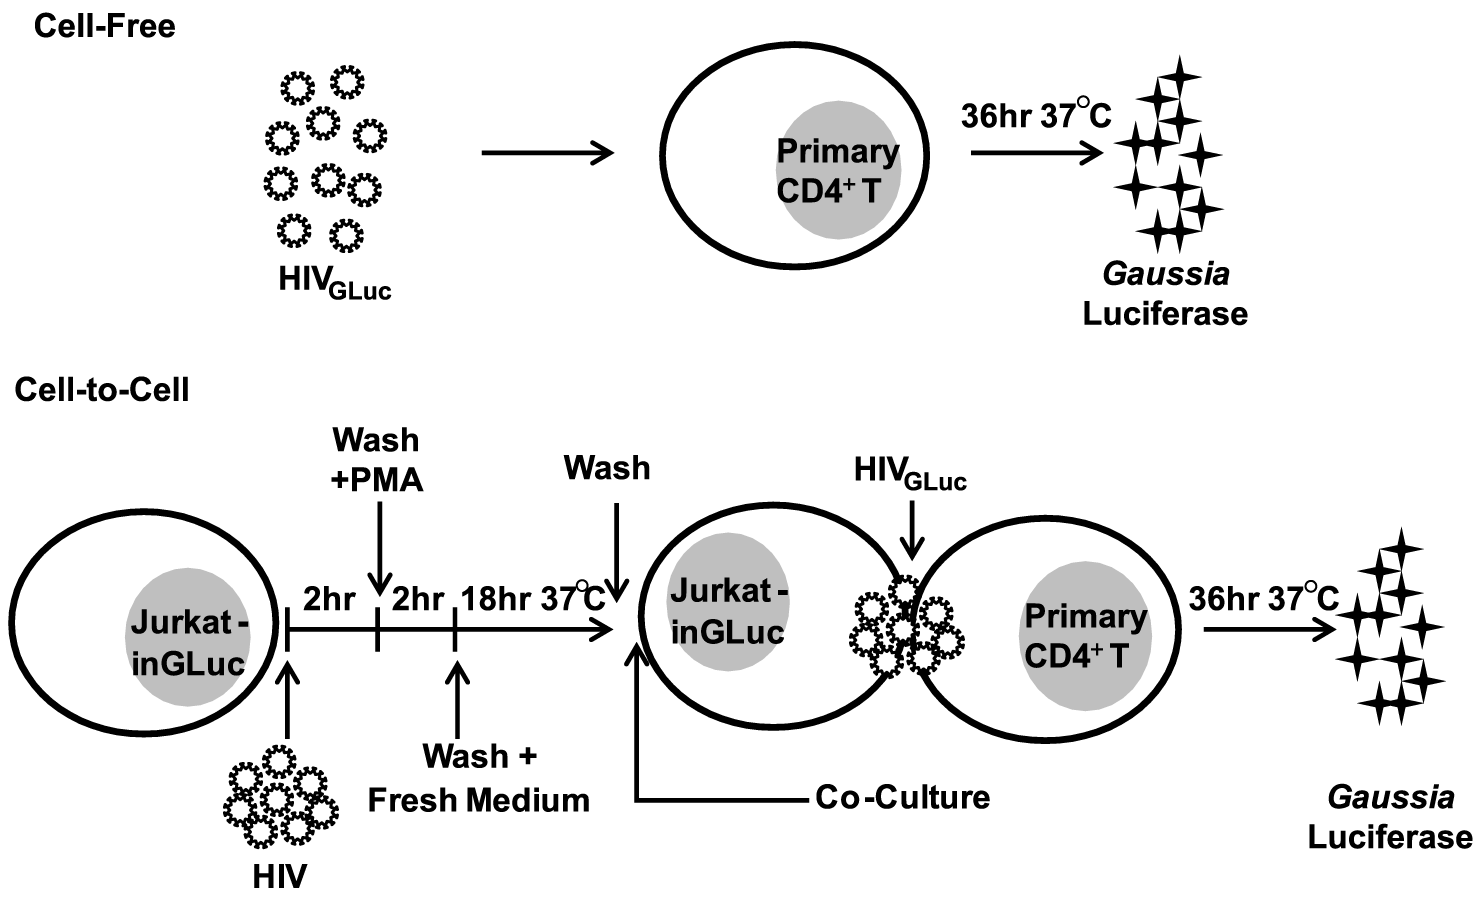 Experimental design for comparing cell-free to cell-to-cell transmission of HIV-1.